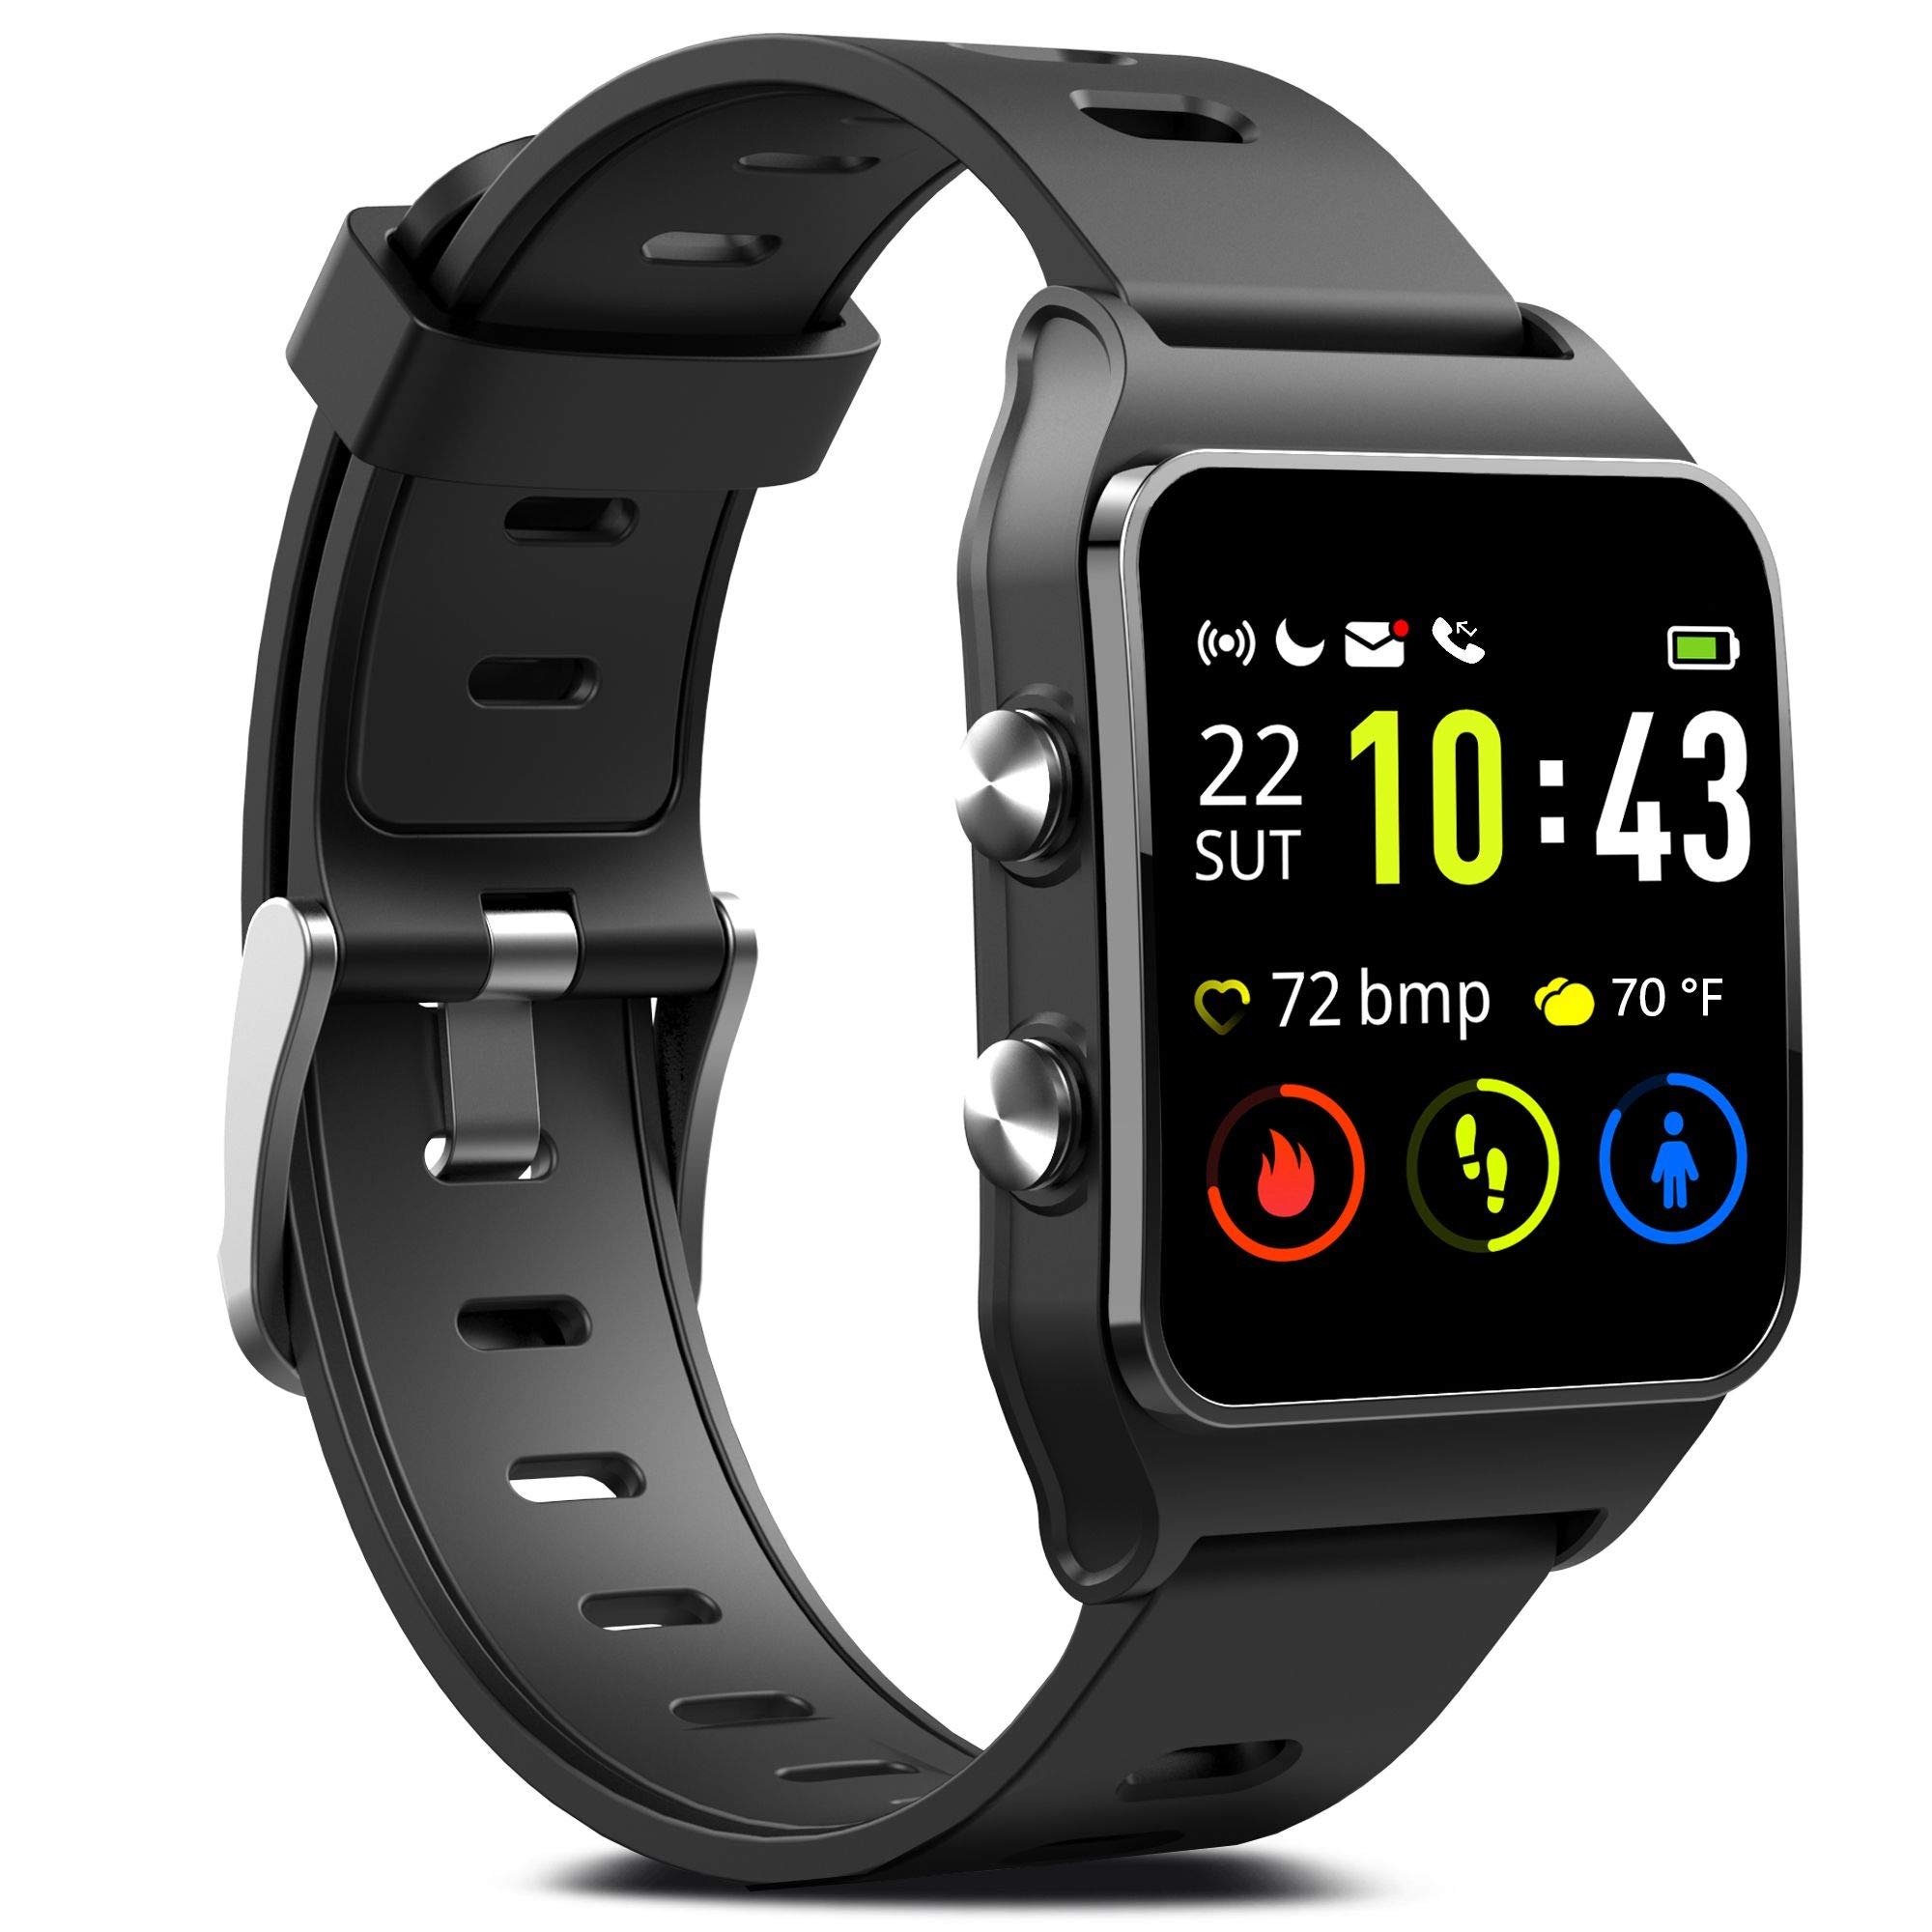 GPS Running Smart Watch, IP68 Waterproof Fitness Tracker with 17 Sport Mode, Touch Screen Heart Rate & Sleep Monitor with Pedometer Calorie Counter Activity Tracker for Men Women Android & iPhone by FITVII